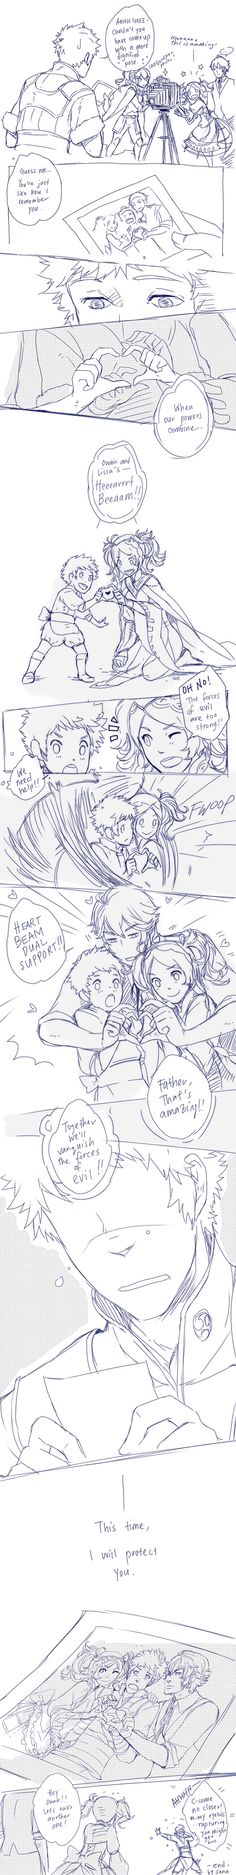 Owain's Family by alexiusSana | Photobucket...., but Lon'qu would be the not Fredrick